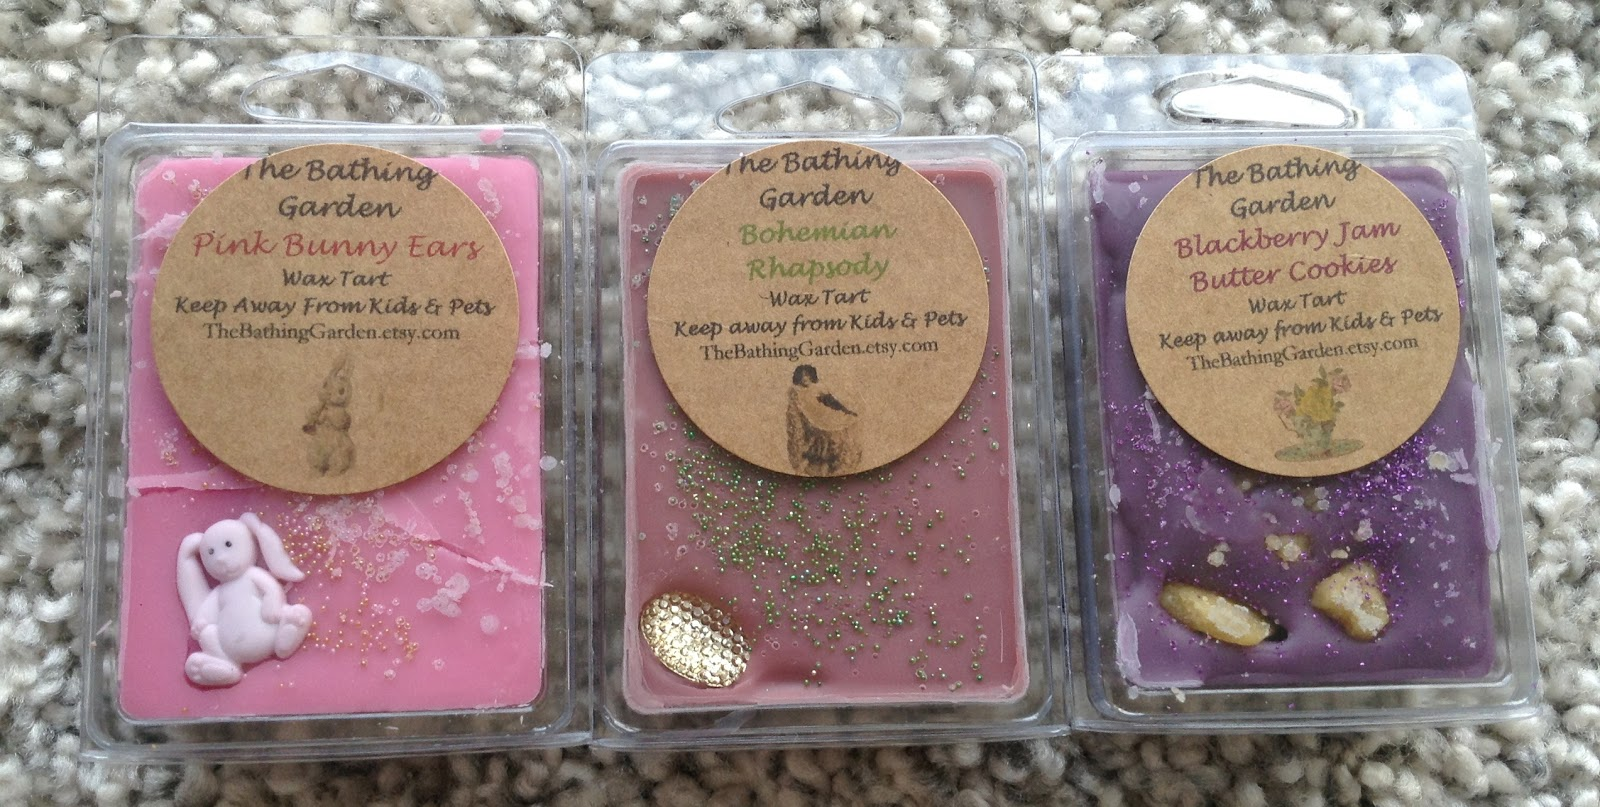 Dreams of scented wax: Couple recent The Bathing Garden hauls